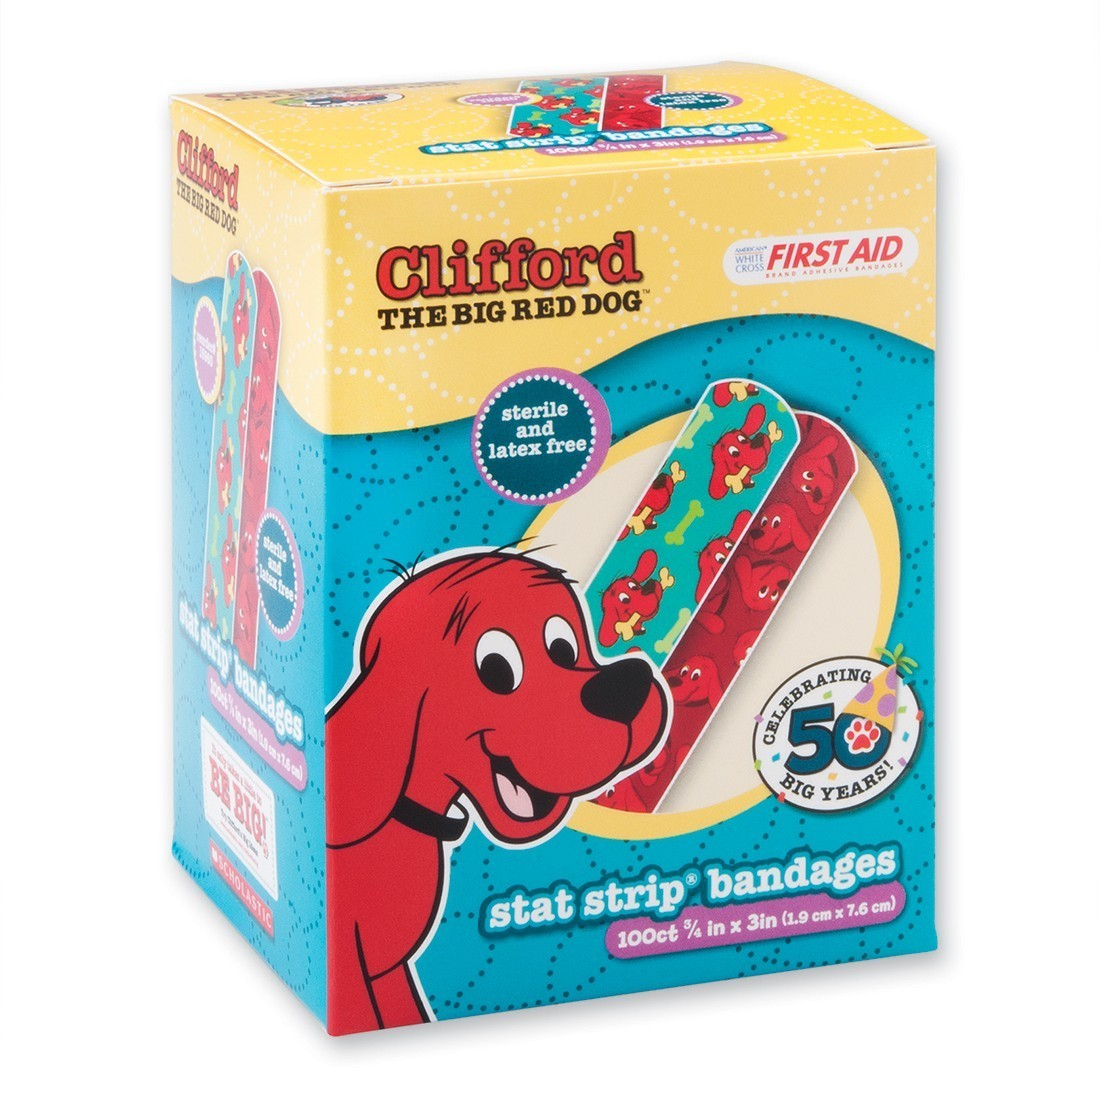 First Aid Clifford Bandages [image]